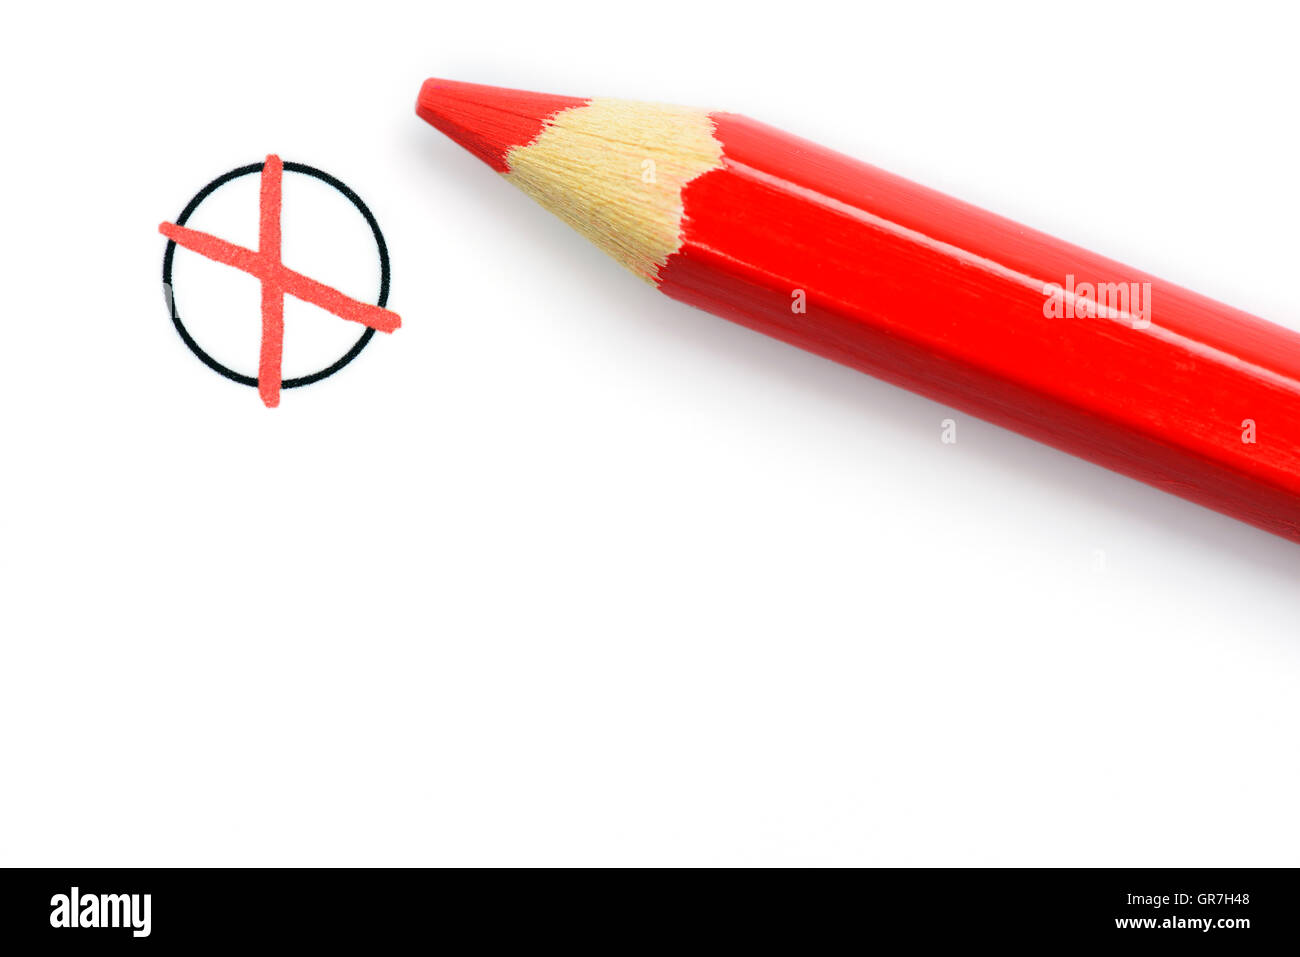 Red Colored Pencil And Cross On Ballot - Stock Image